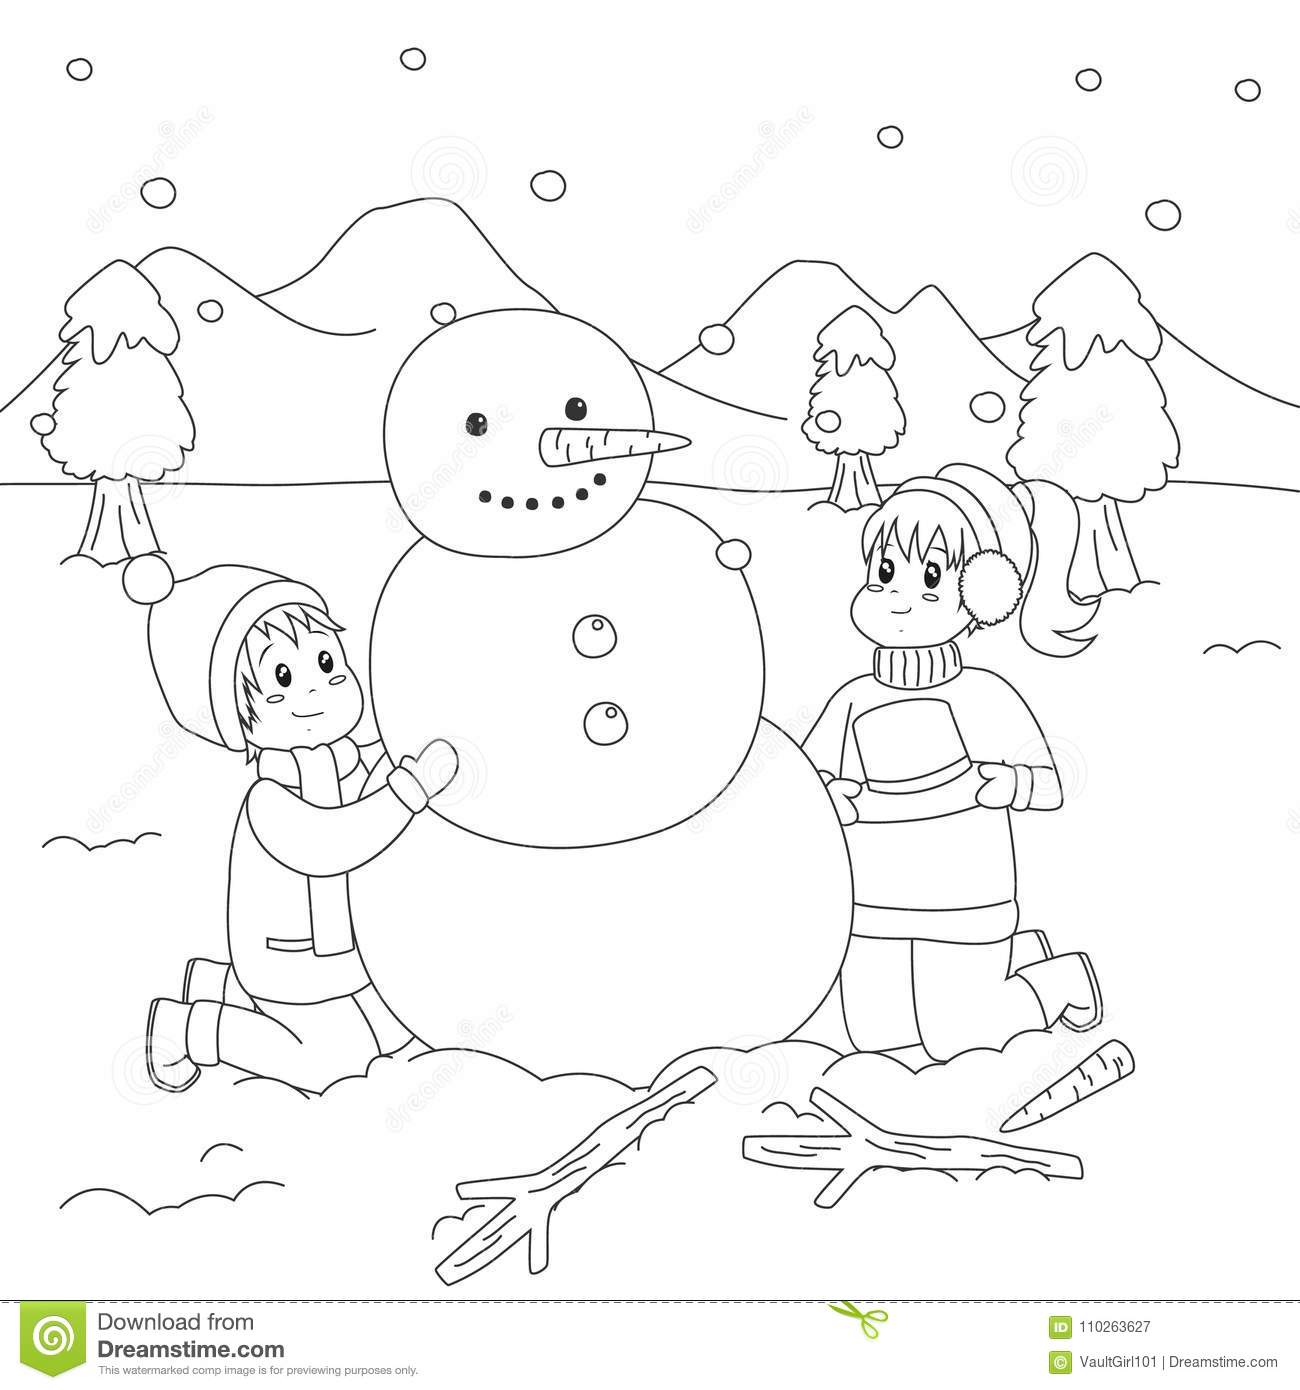 photo relating to Snowman Printable Coloring Page titled Joyful Children Planning A Snowman. Coloring Web page Cartoon Vector